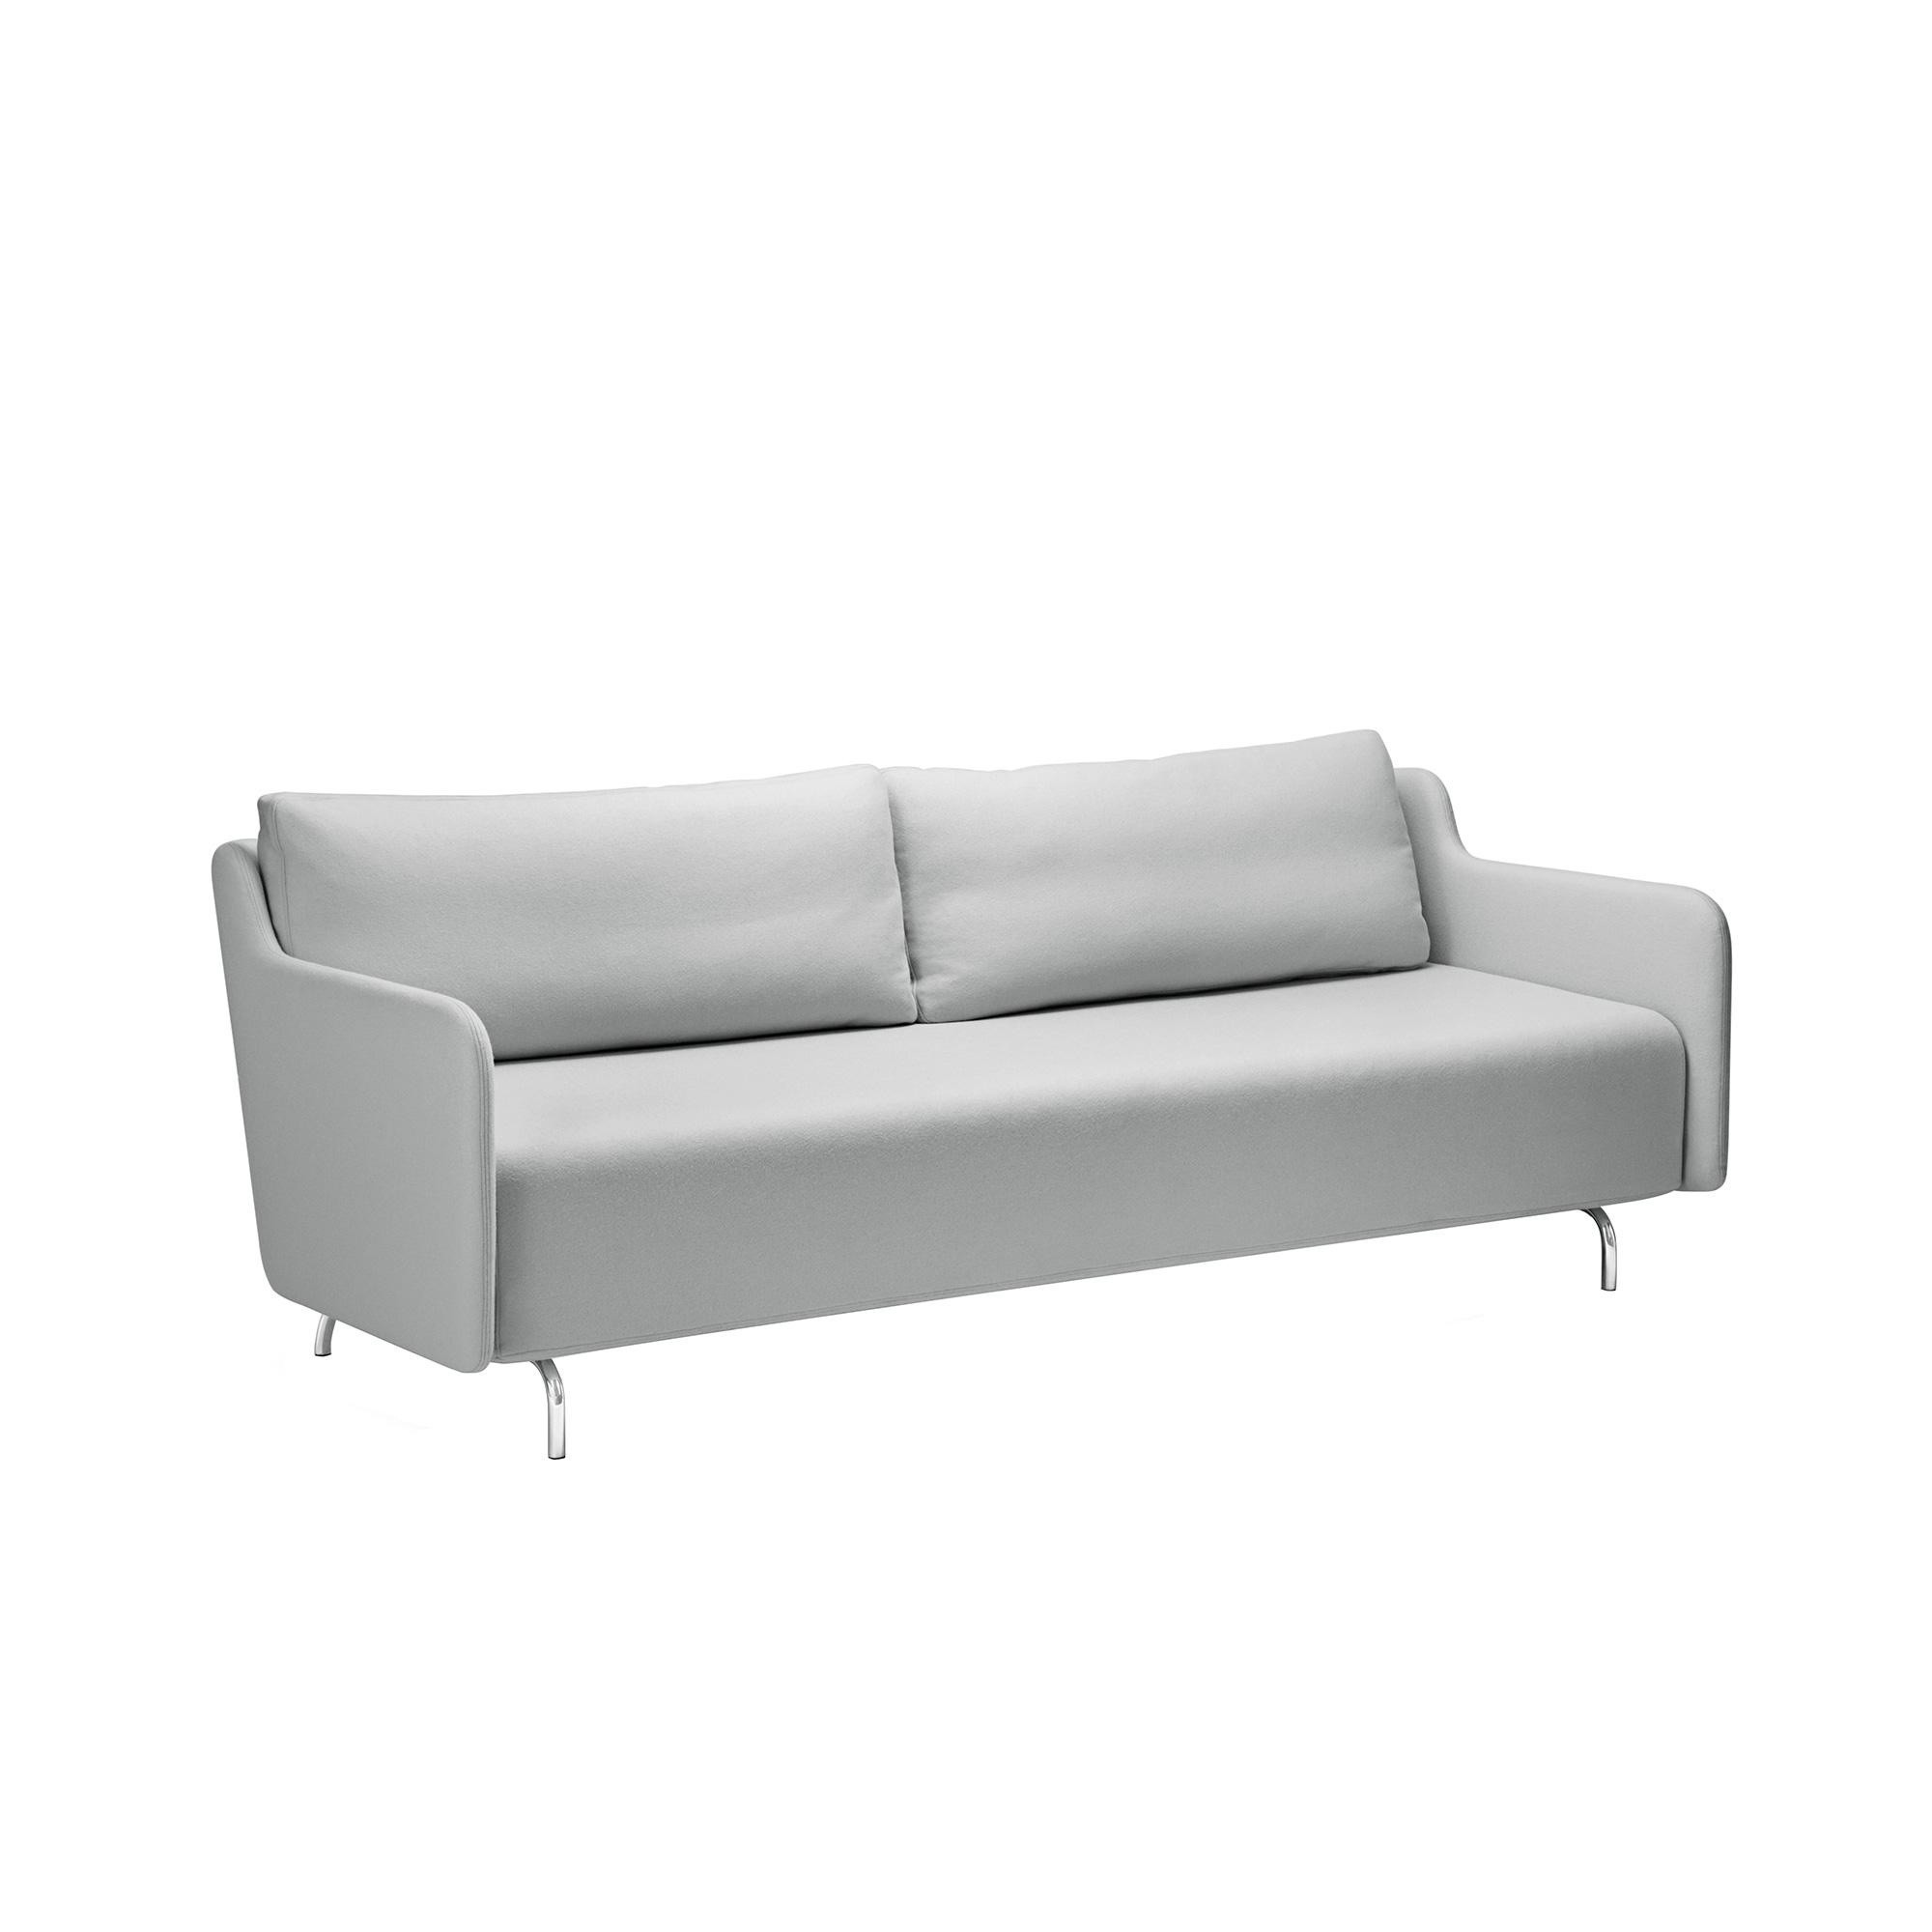 Sofa Füße Chrom Venus Sofa Bed